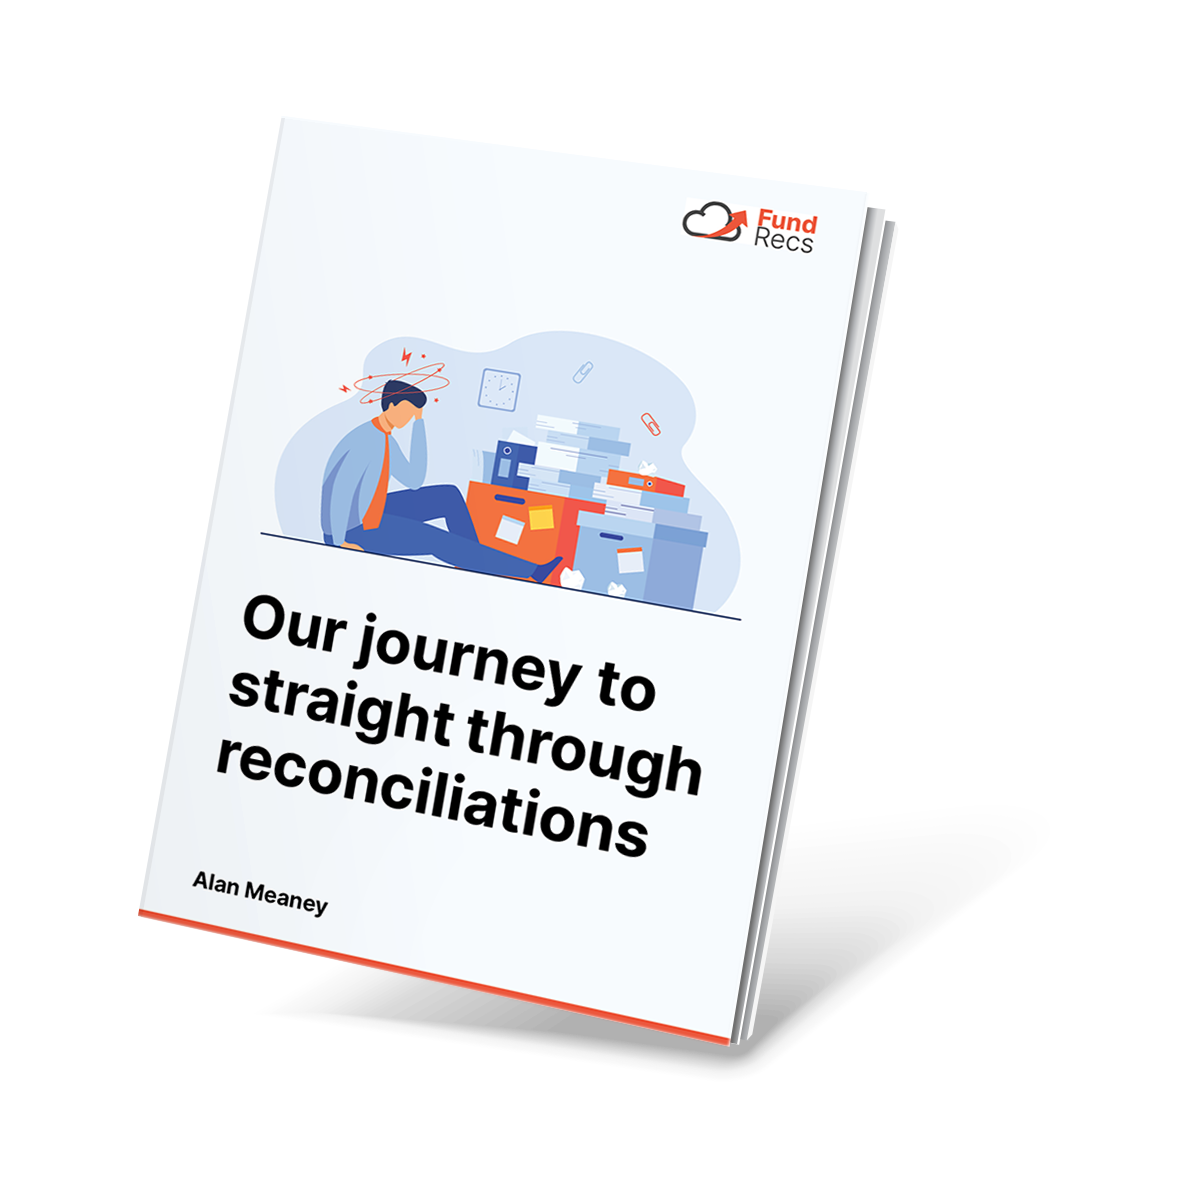 Whitepaper Our journey to straight through reconciliations